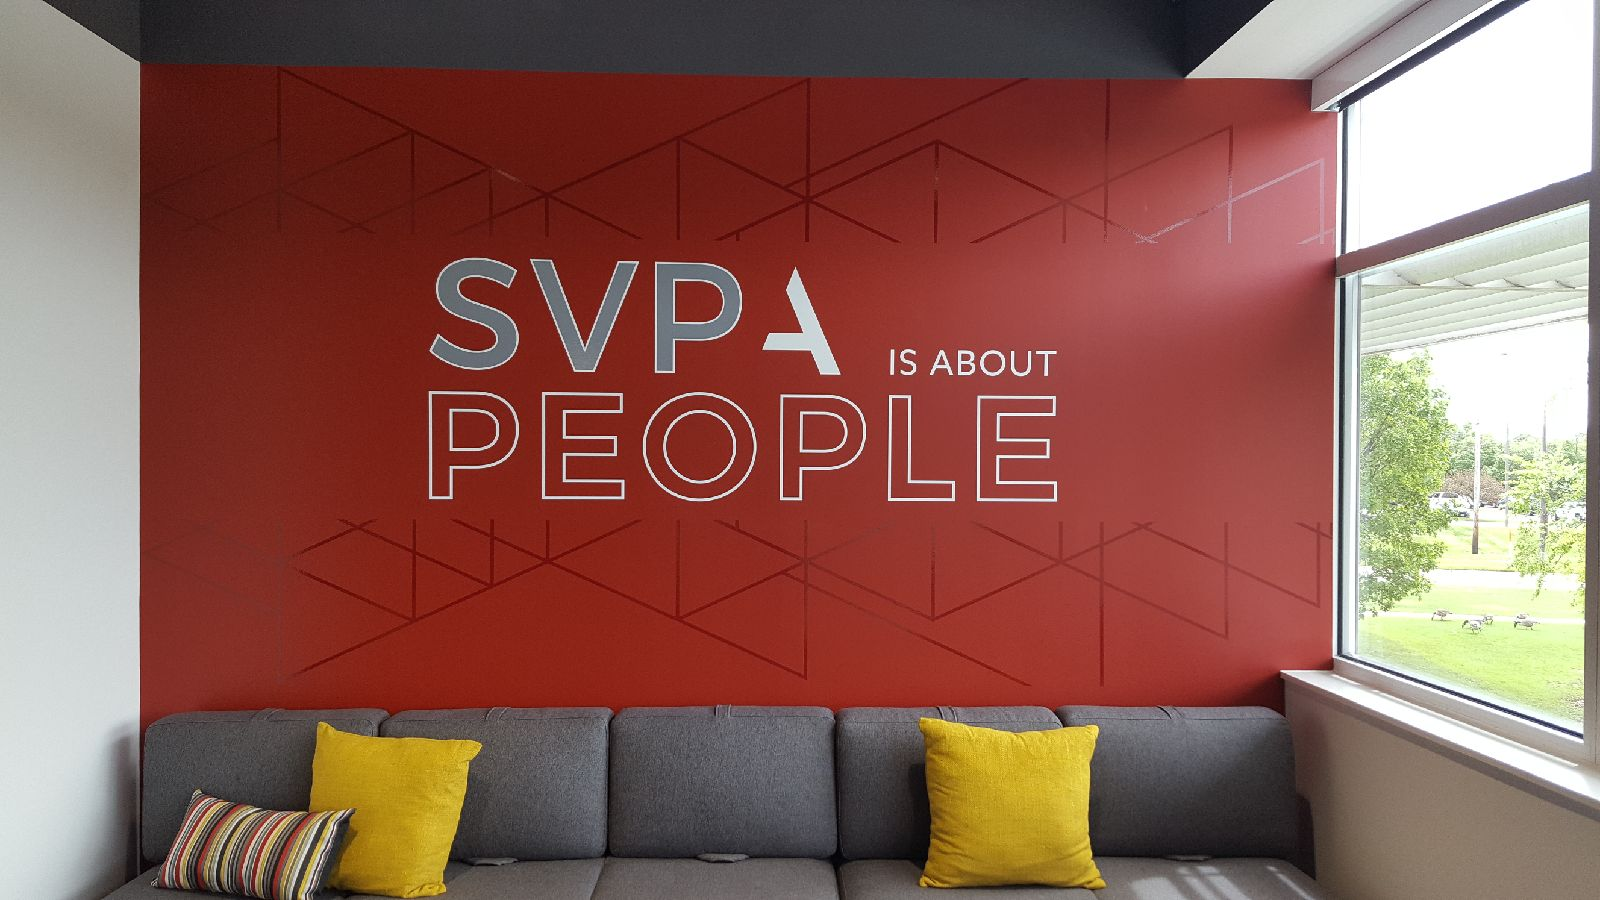 Wall Graphics Des Moines